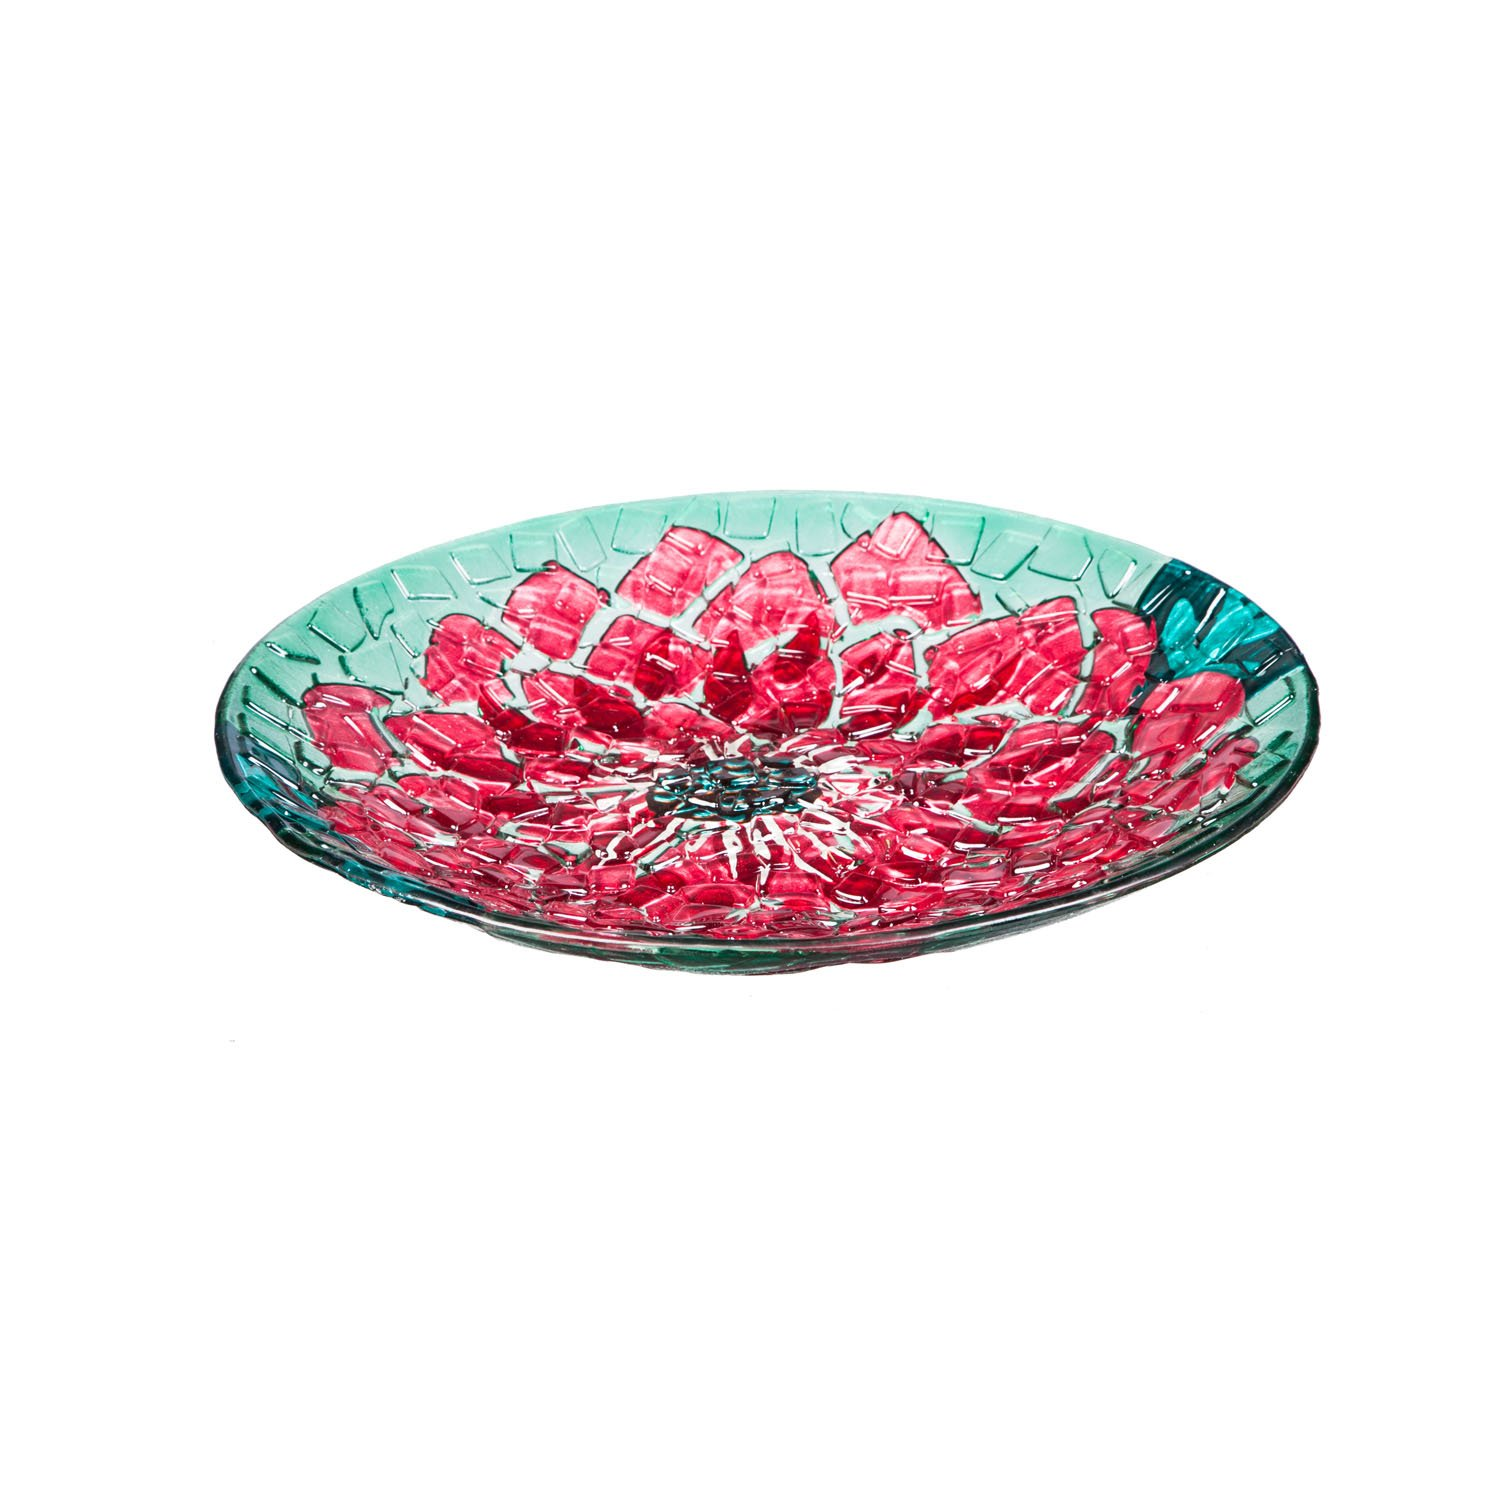 Evergreen Garden Pretty in Pink Glass Birdbath Bowl, 18 inches